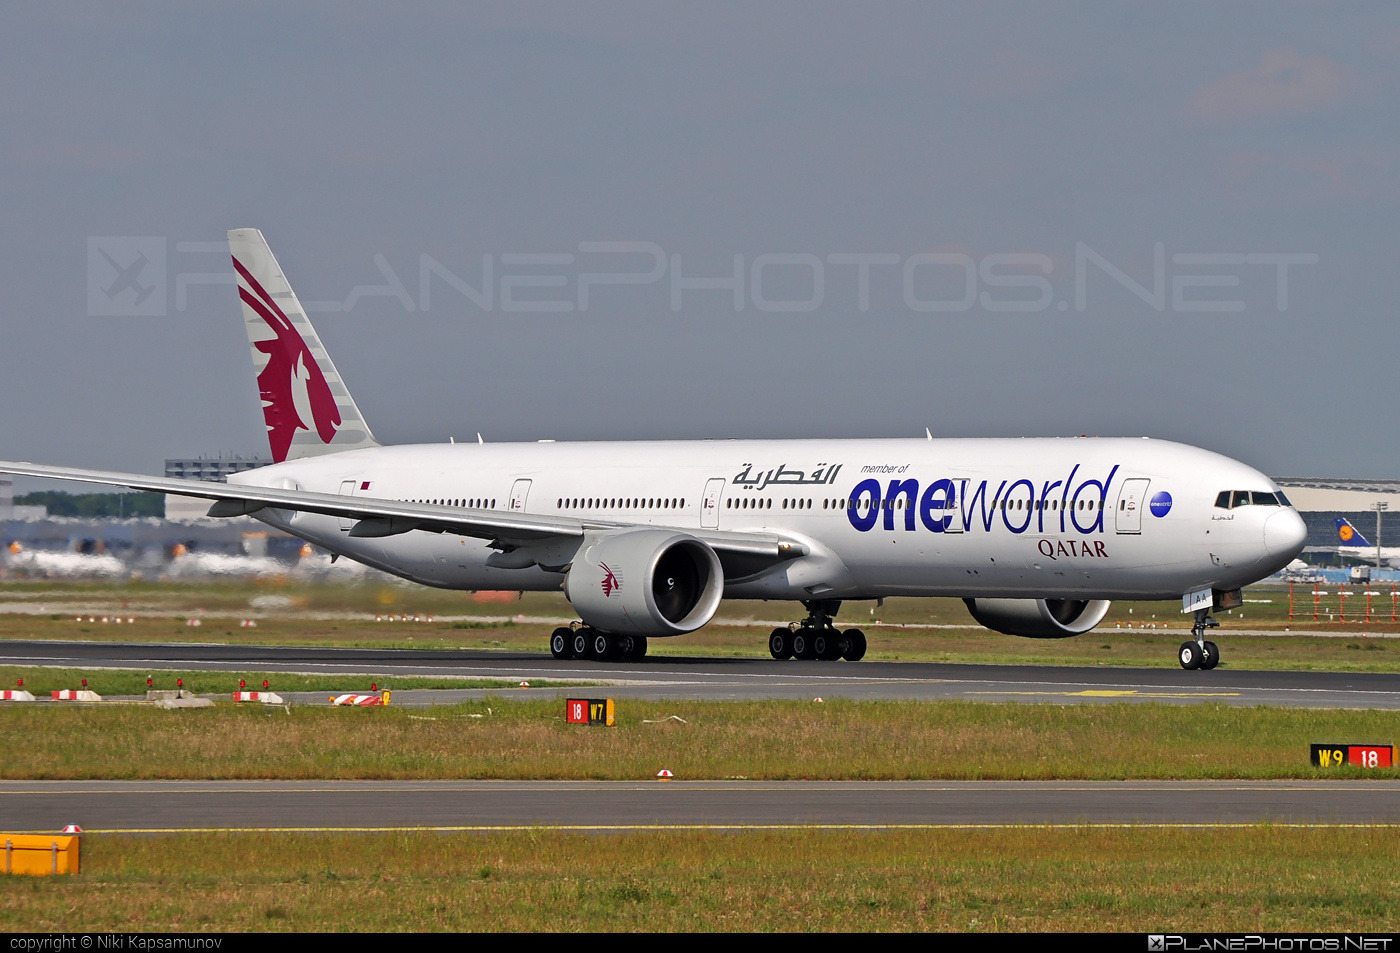 Boeing 777-300ER - A7-BAA operated by Qatar Airways #b777 #b777er #boeing #boeing777 #oneworld #qatarairways #tripleseven